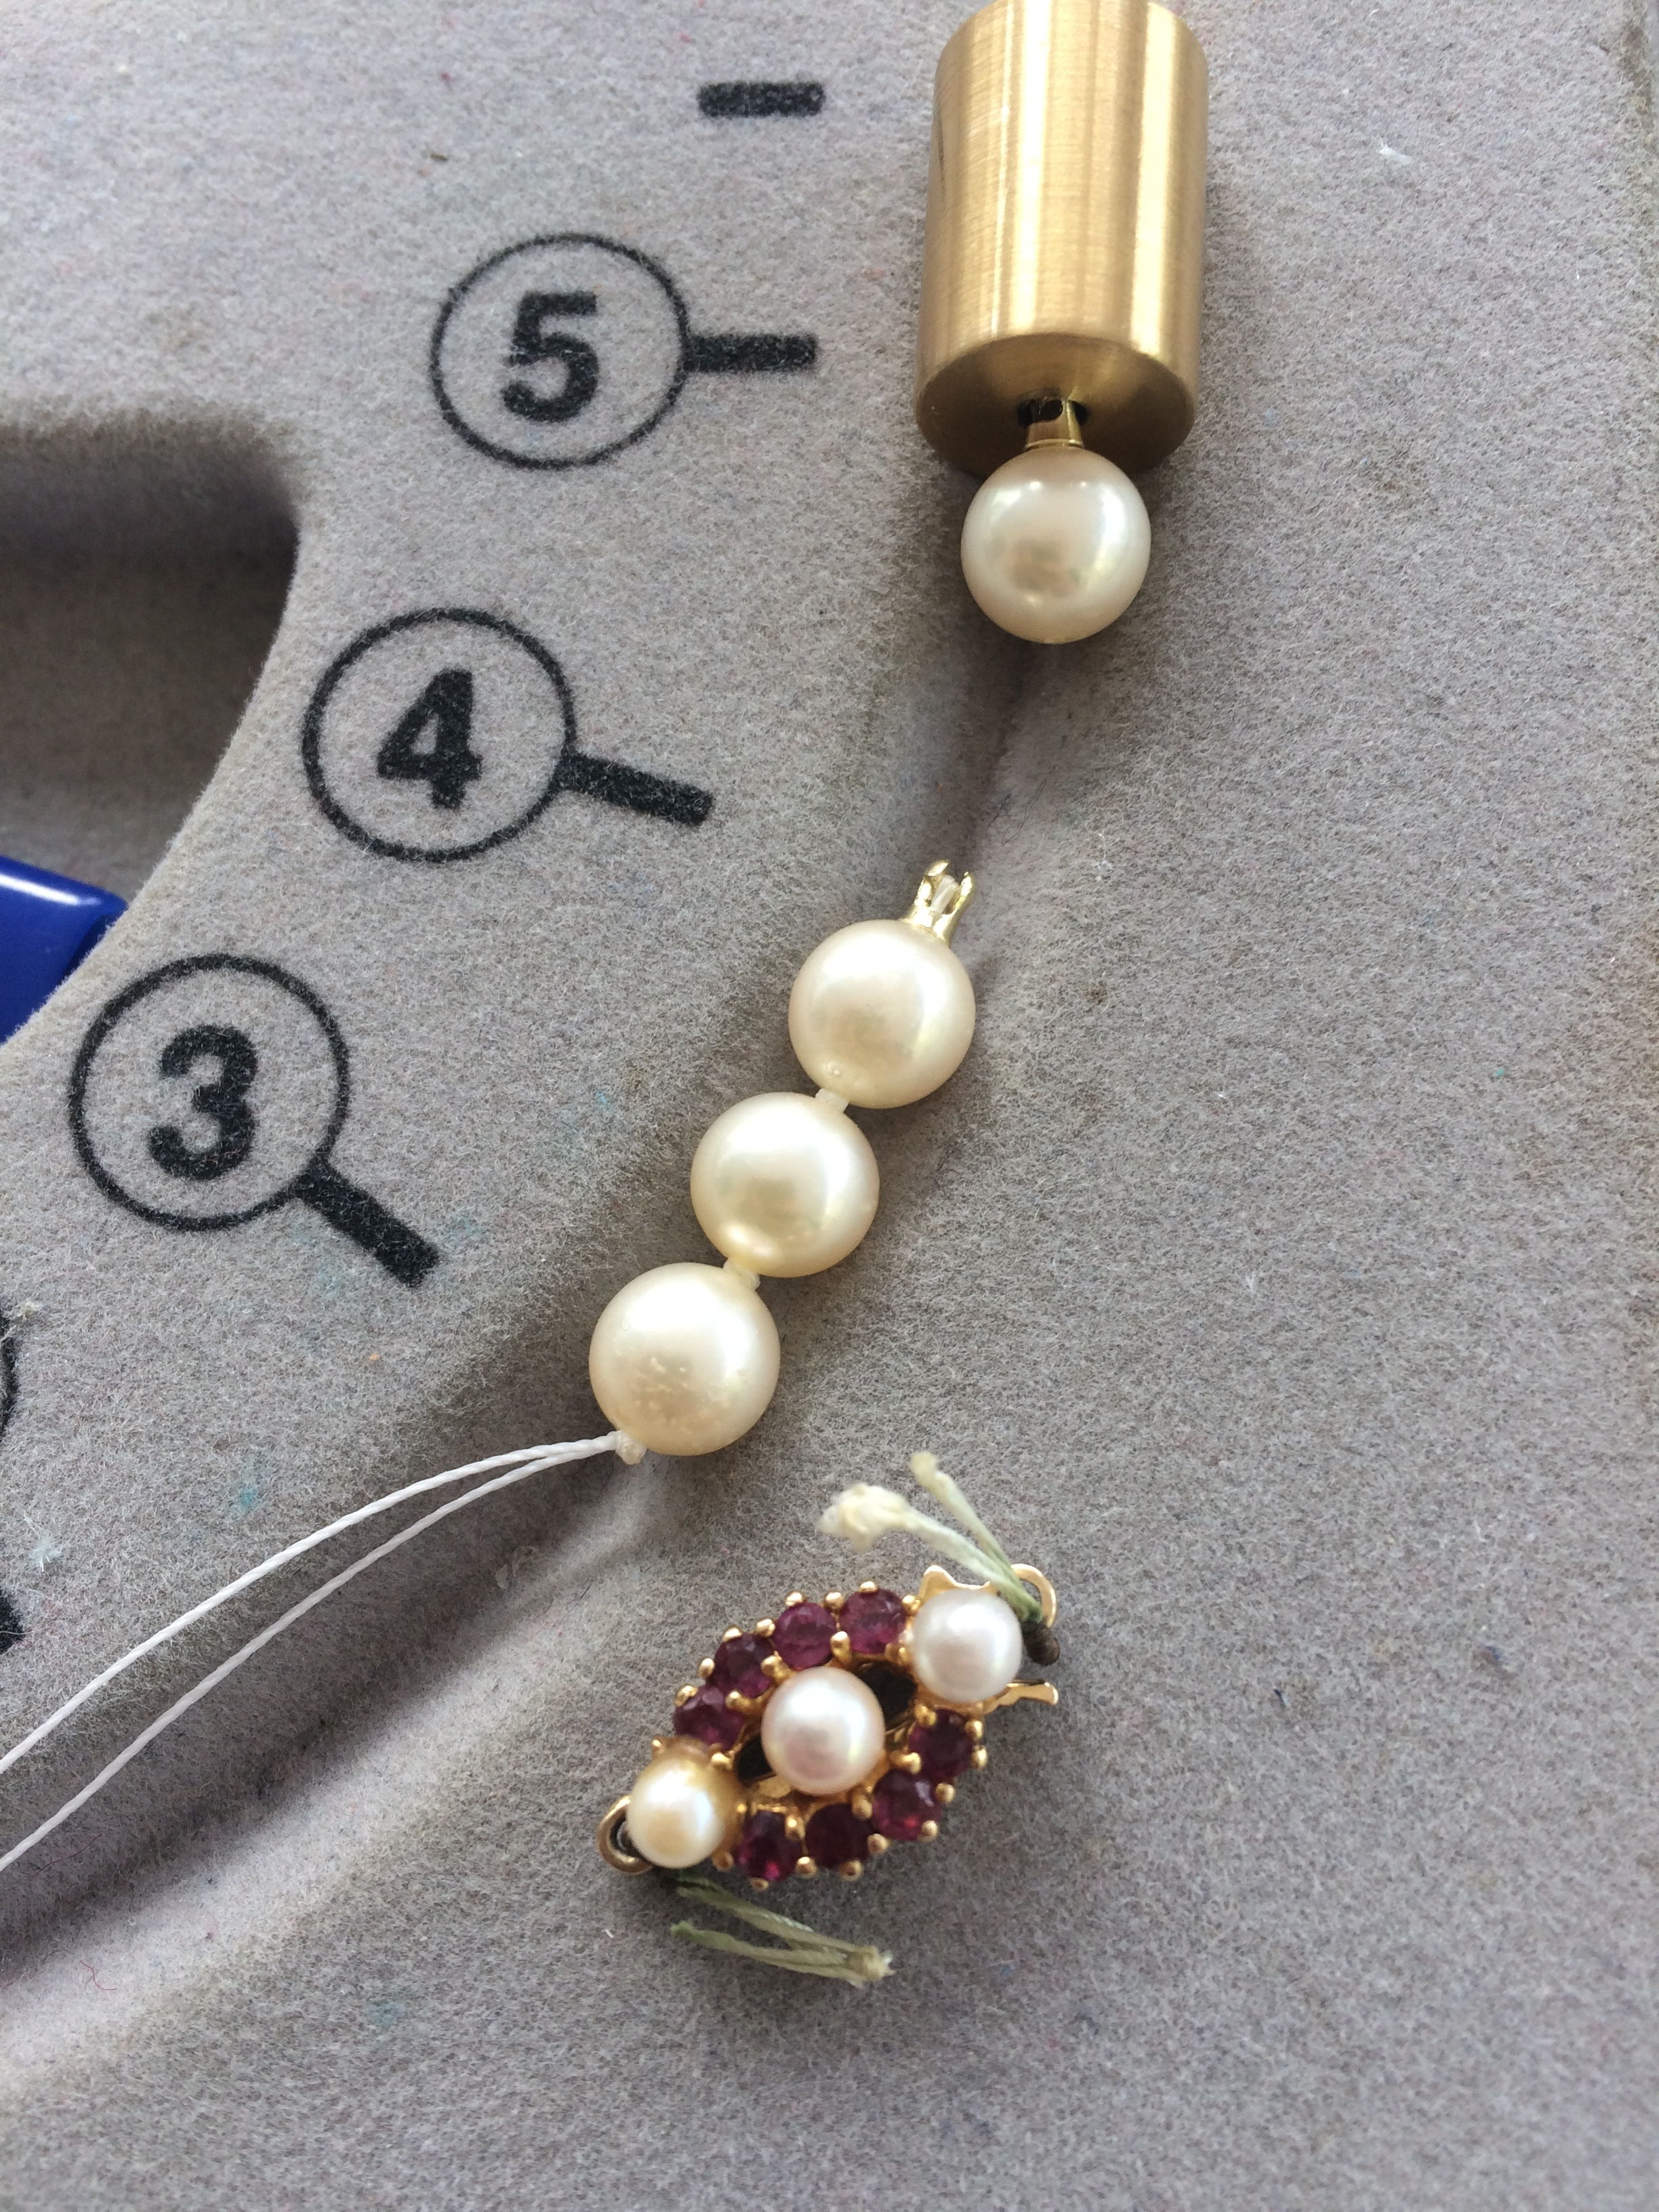 Last pearl waiting in the gold cylinder clasp